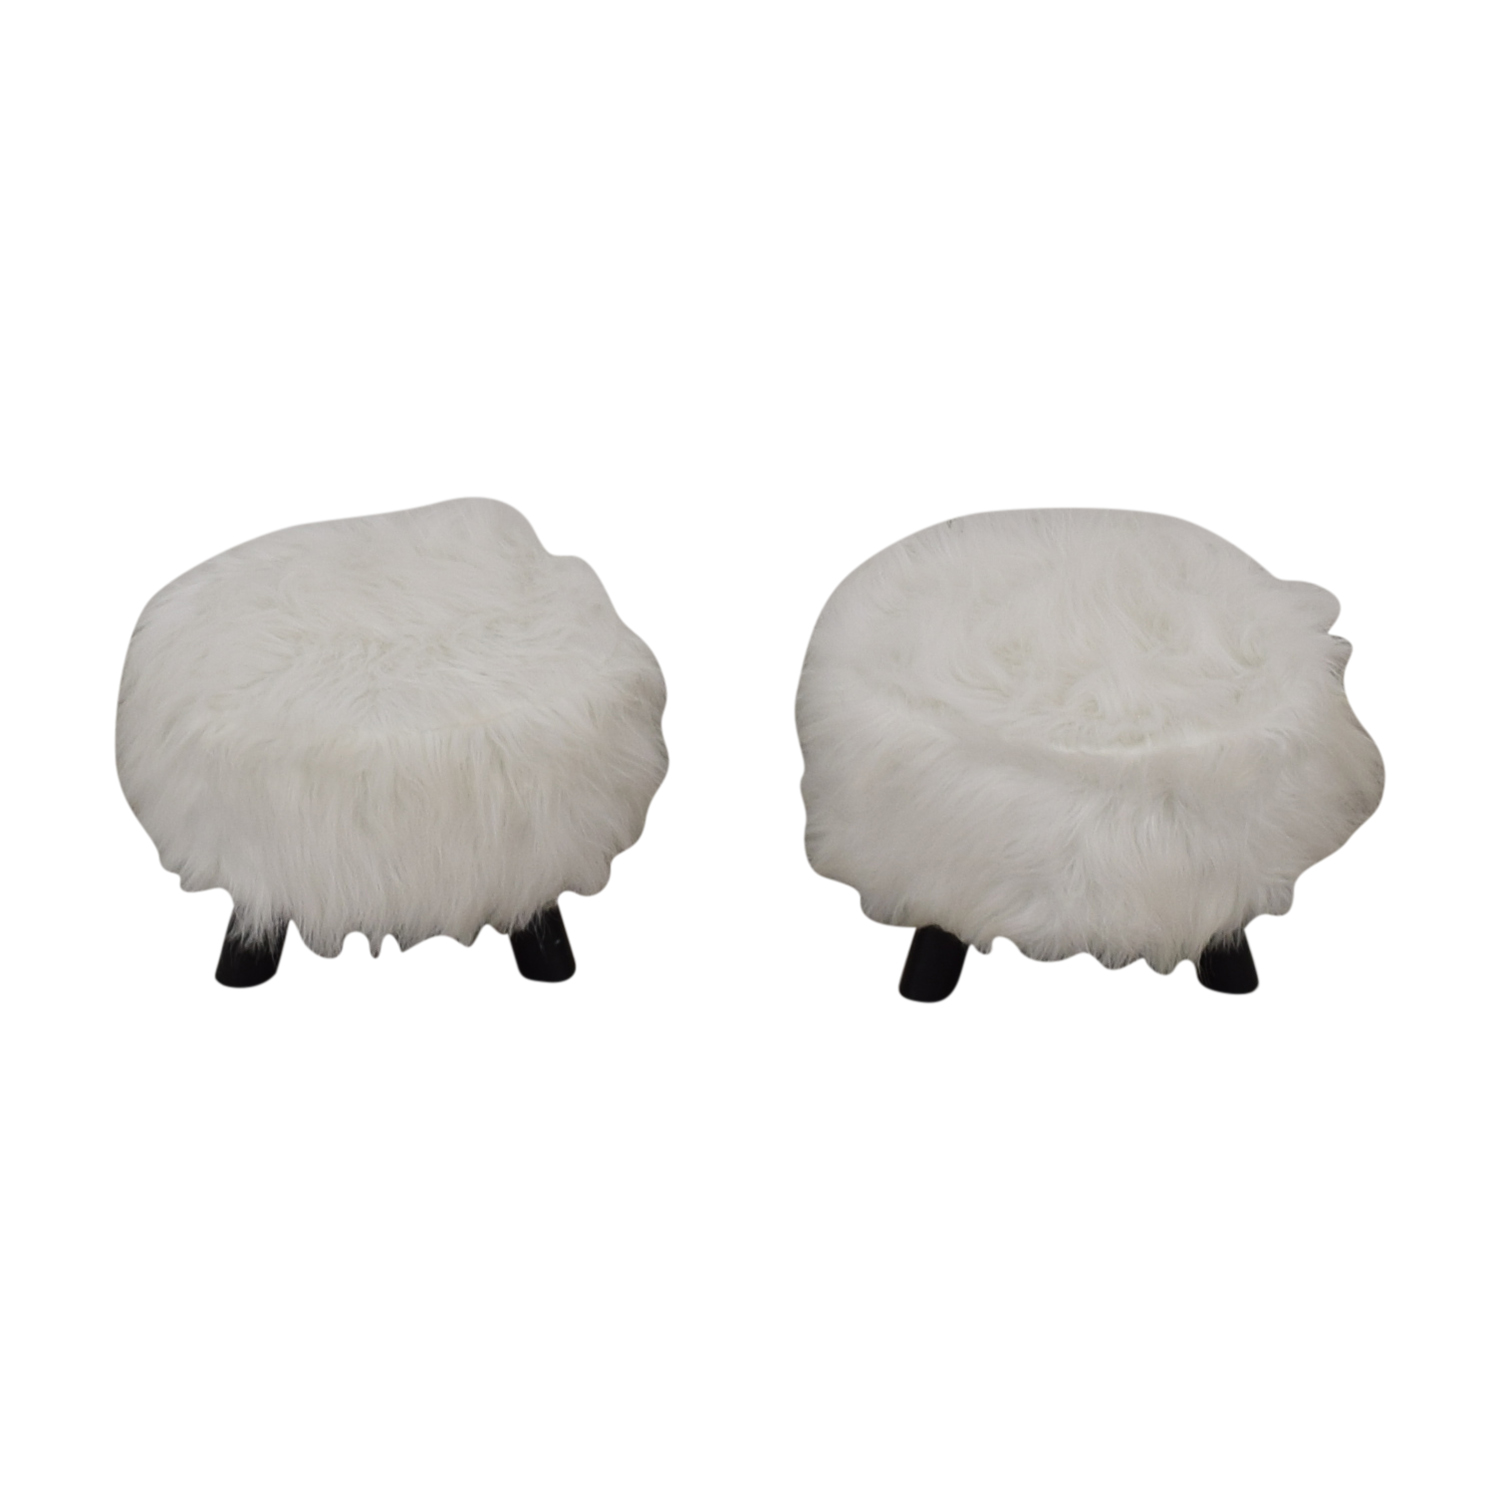 Small Fur Footstools / Sofas